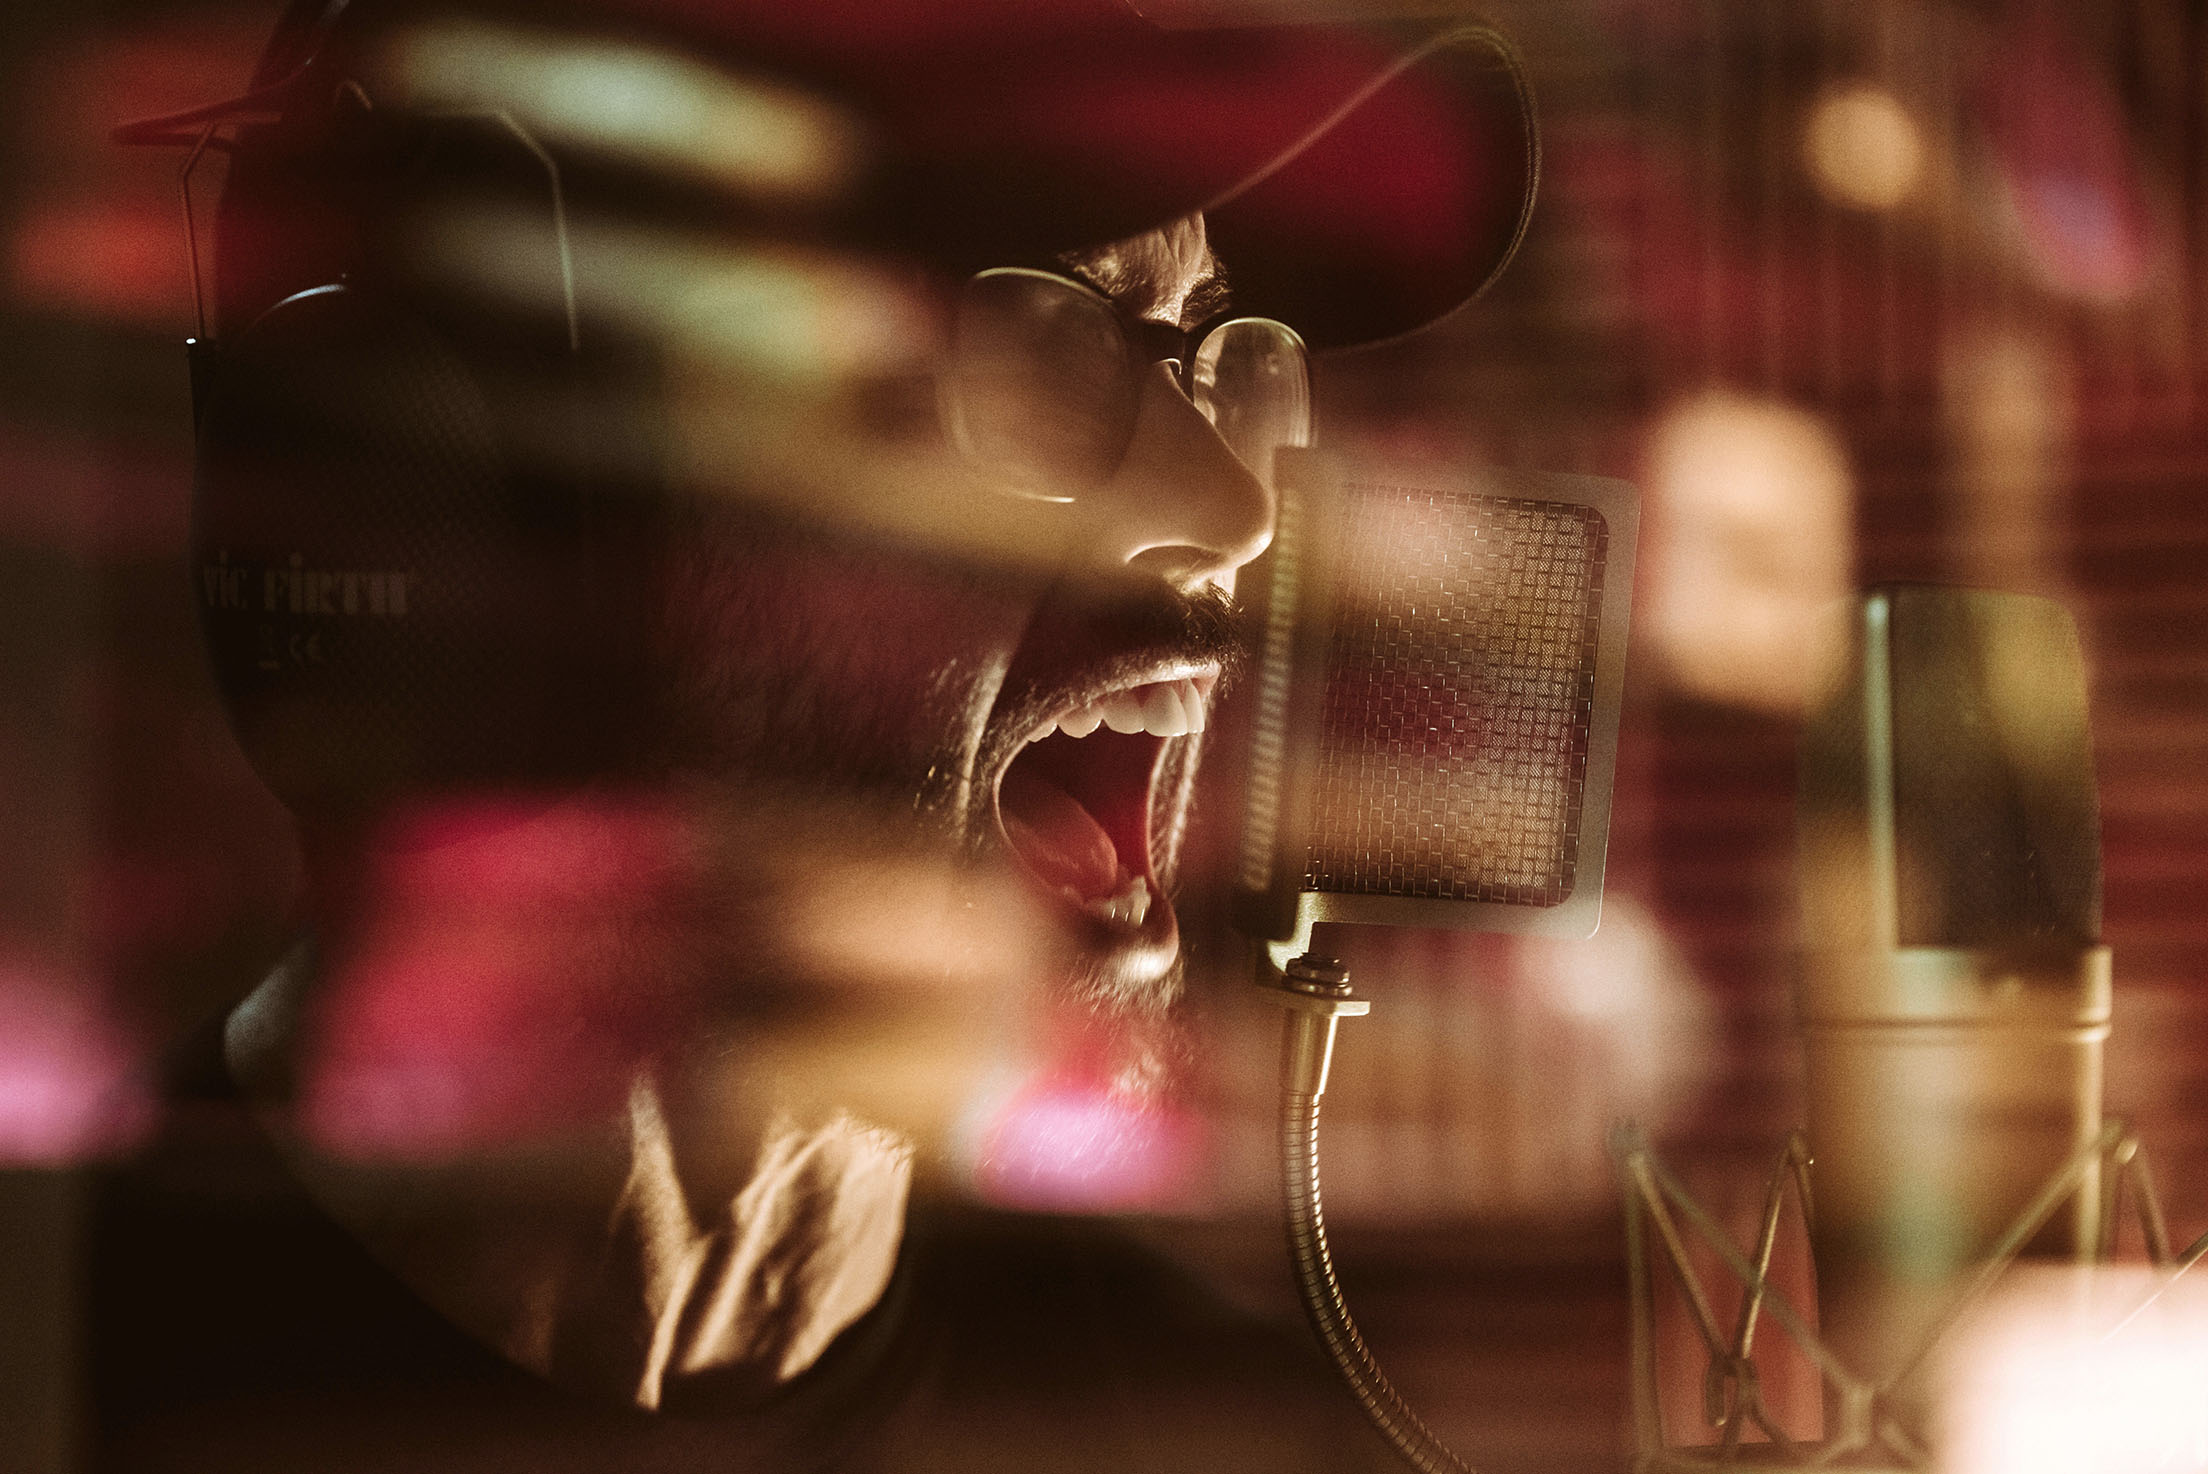 capstan anthony demario screaming lead singer studio recording band concert rock photo photography image